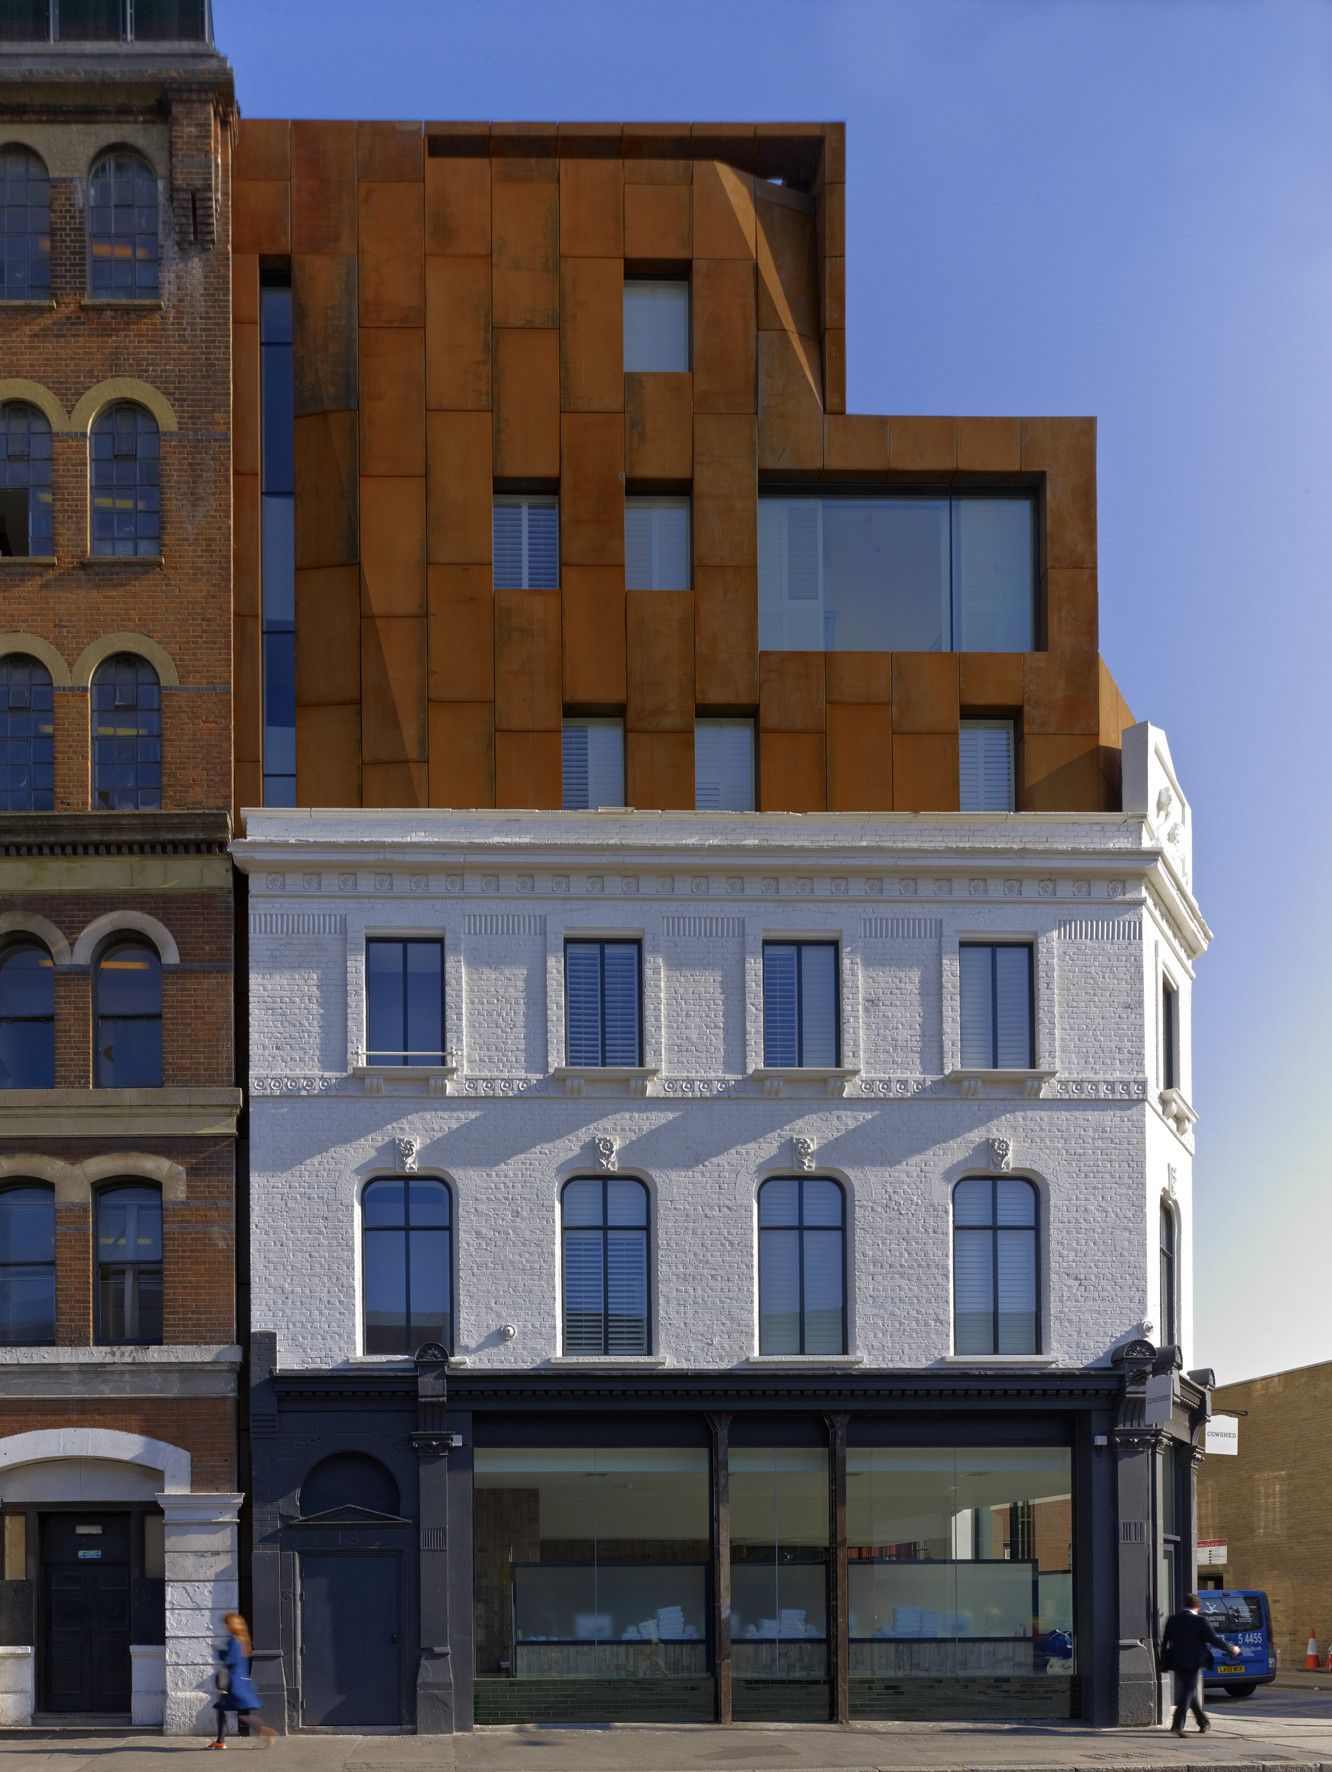 Gallery Of Shoreditch Rooms / Archer Architects